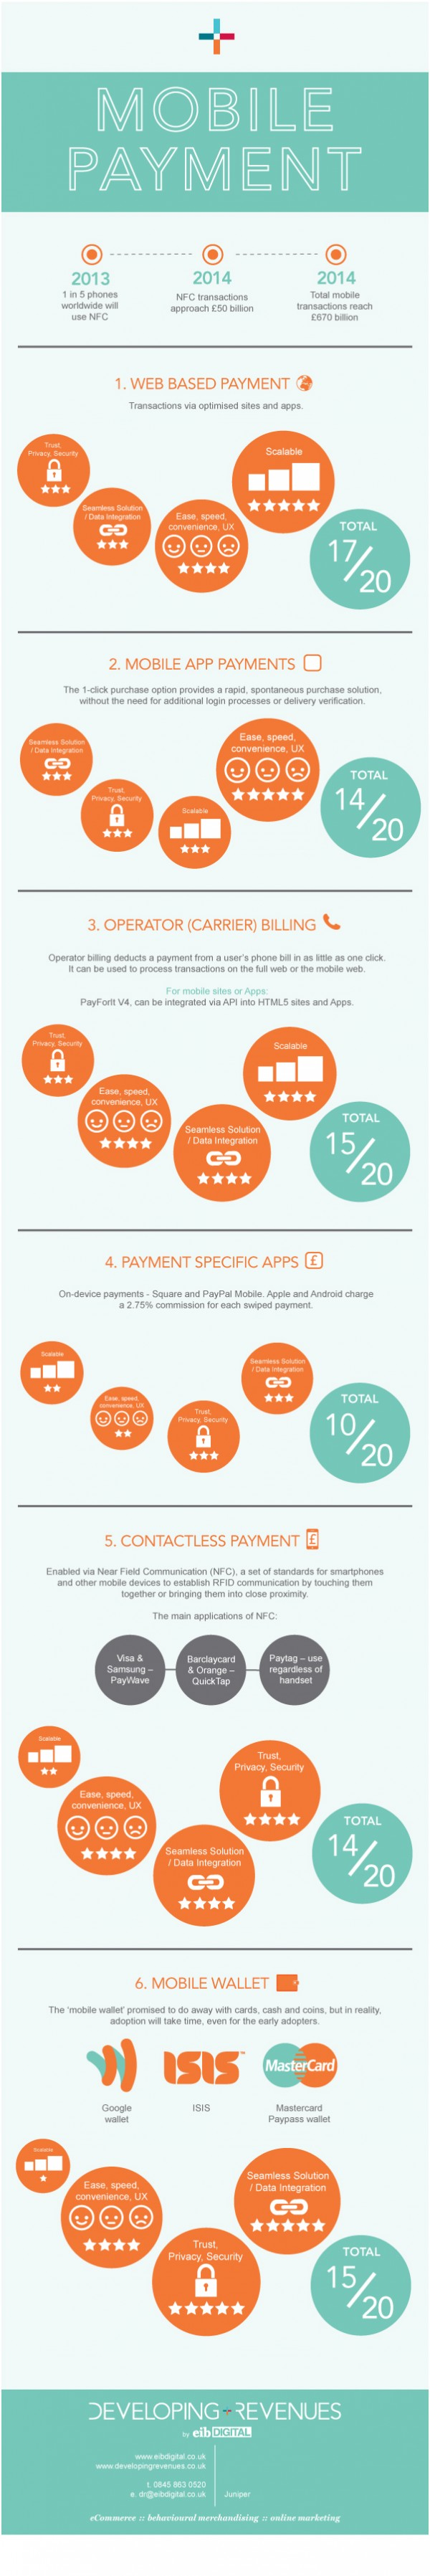 Mobile Payment | Developing Revenues - eCommerce guides and infographics